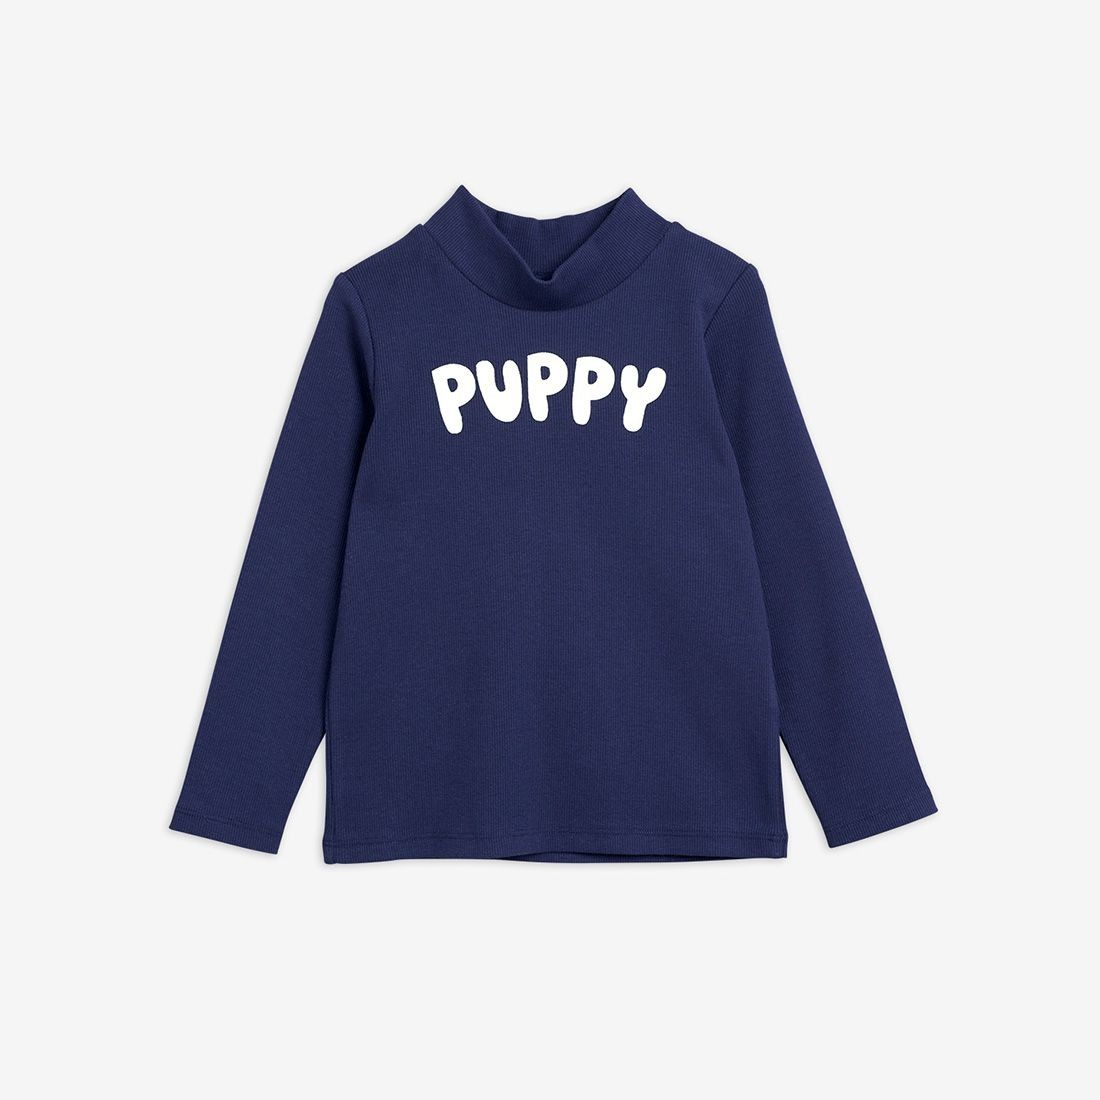 Navy Shirt with Big Puppy Print